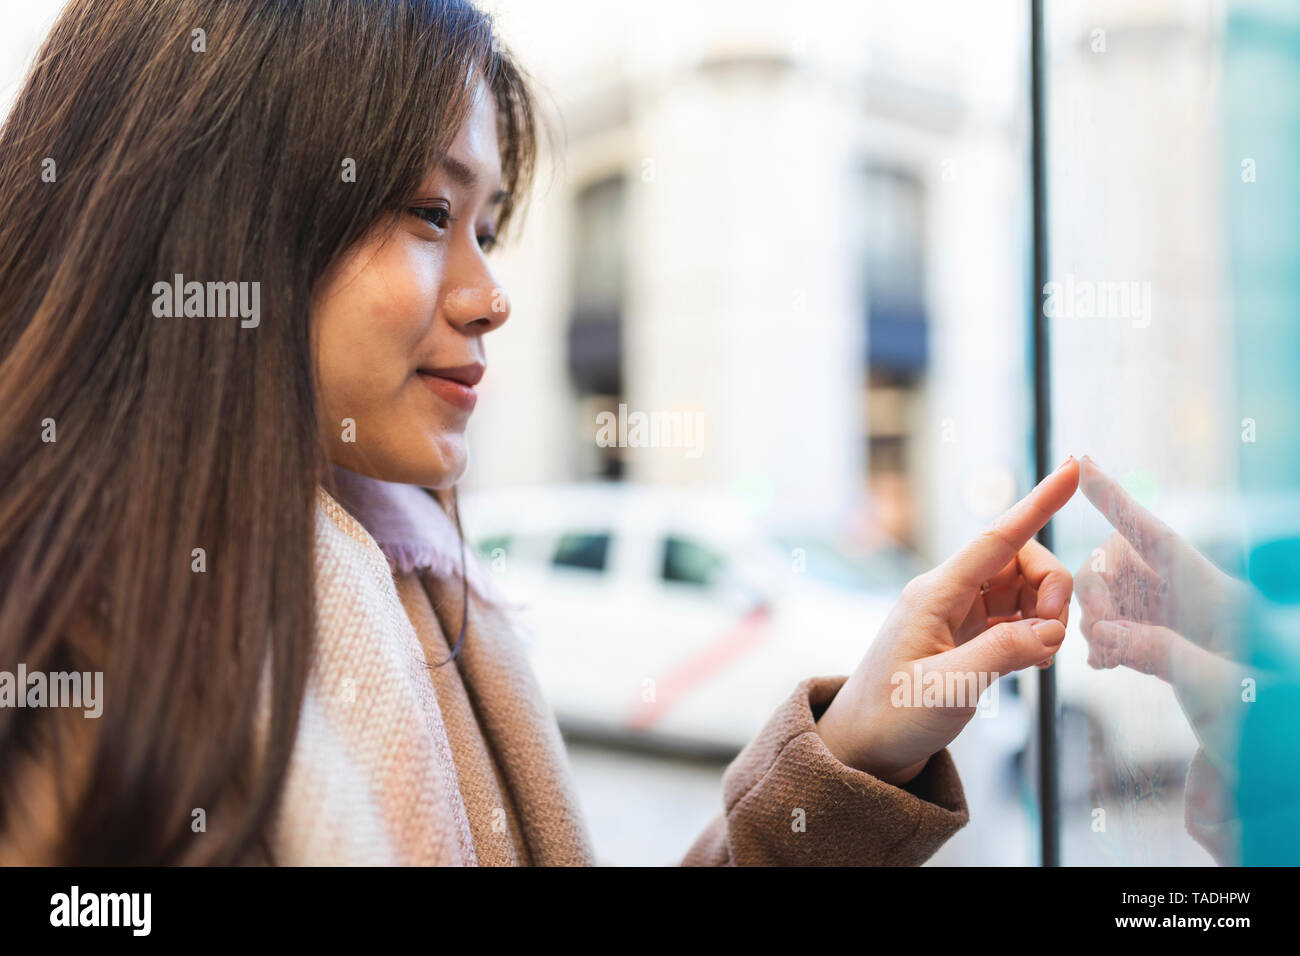 Spain, Madrid, young woman looking at the map and exploring the city - Stock Image